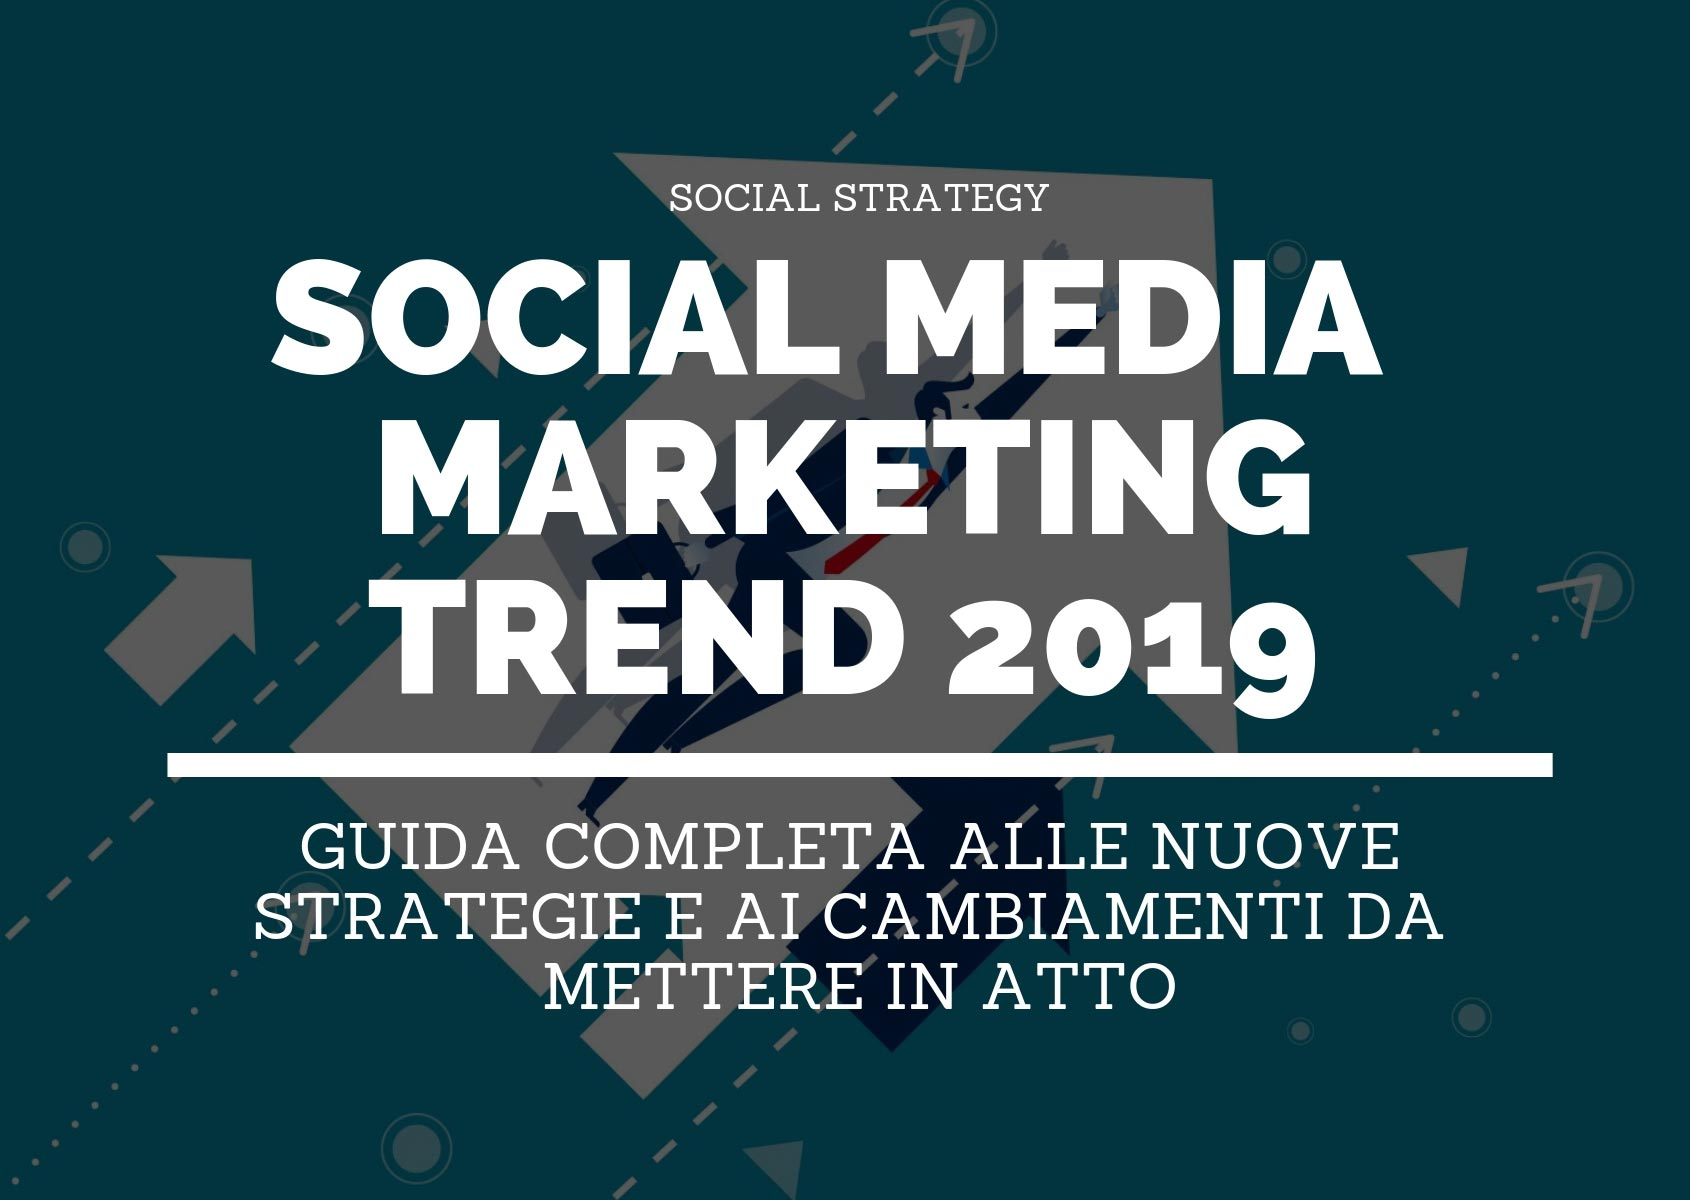 Social Media Marketing Trend 2019: guida completa e aggiornata